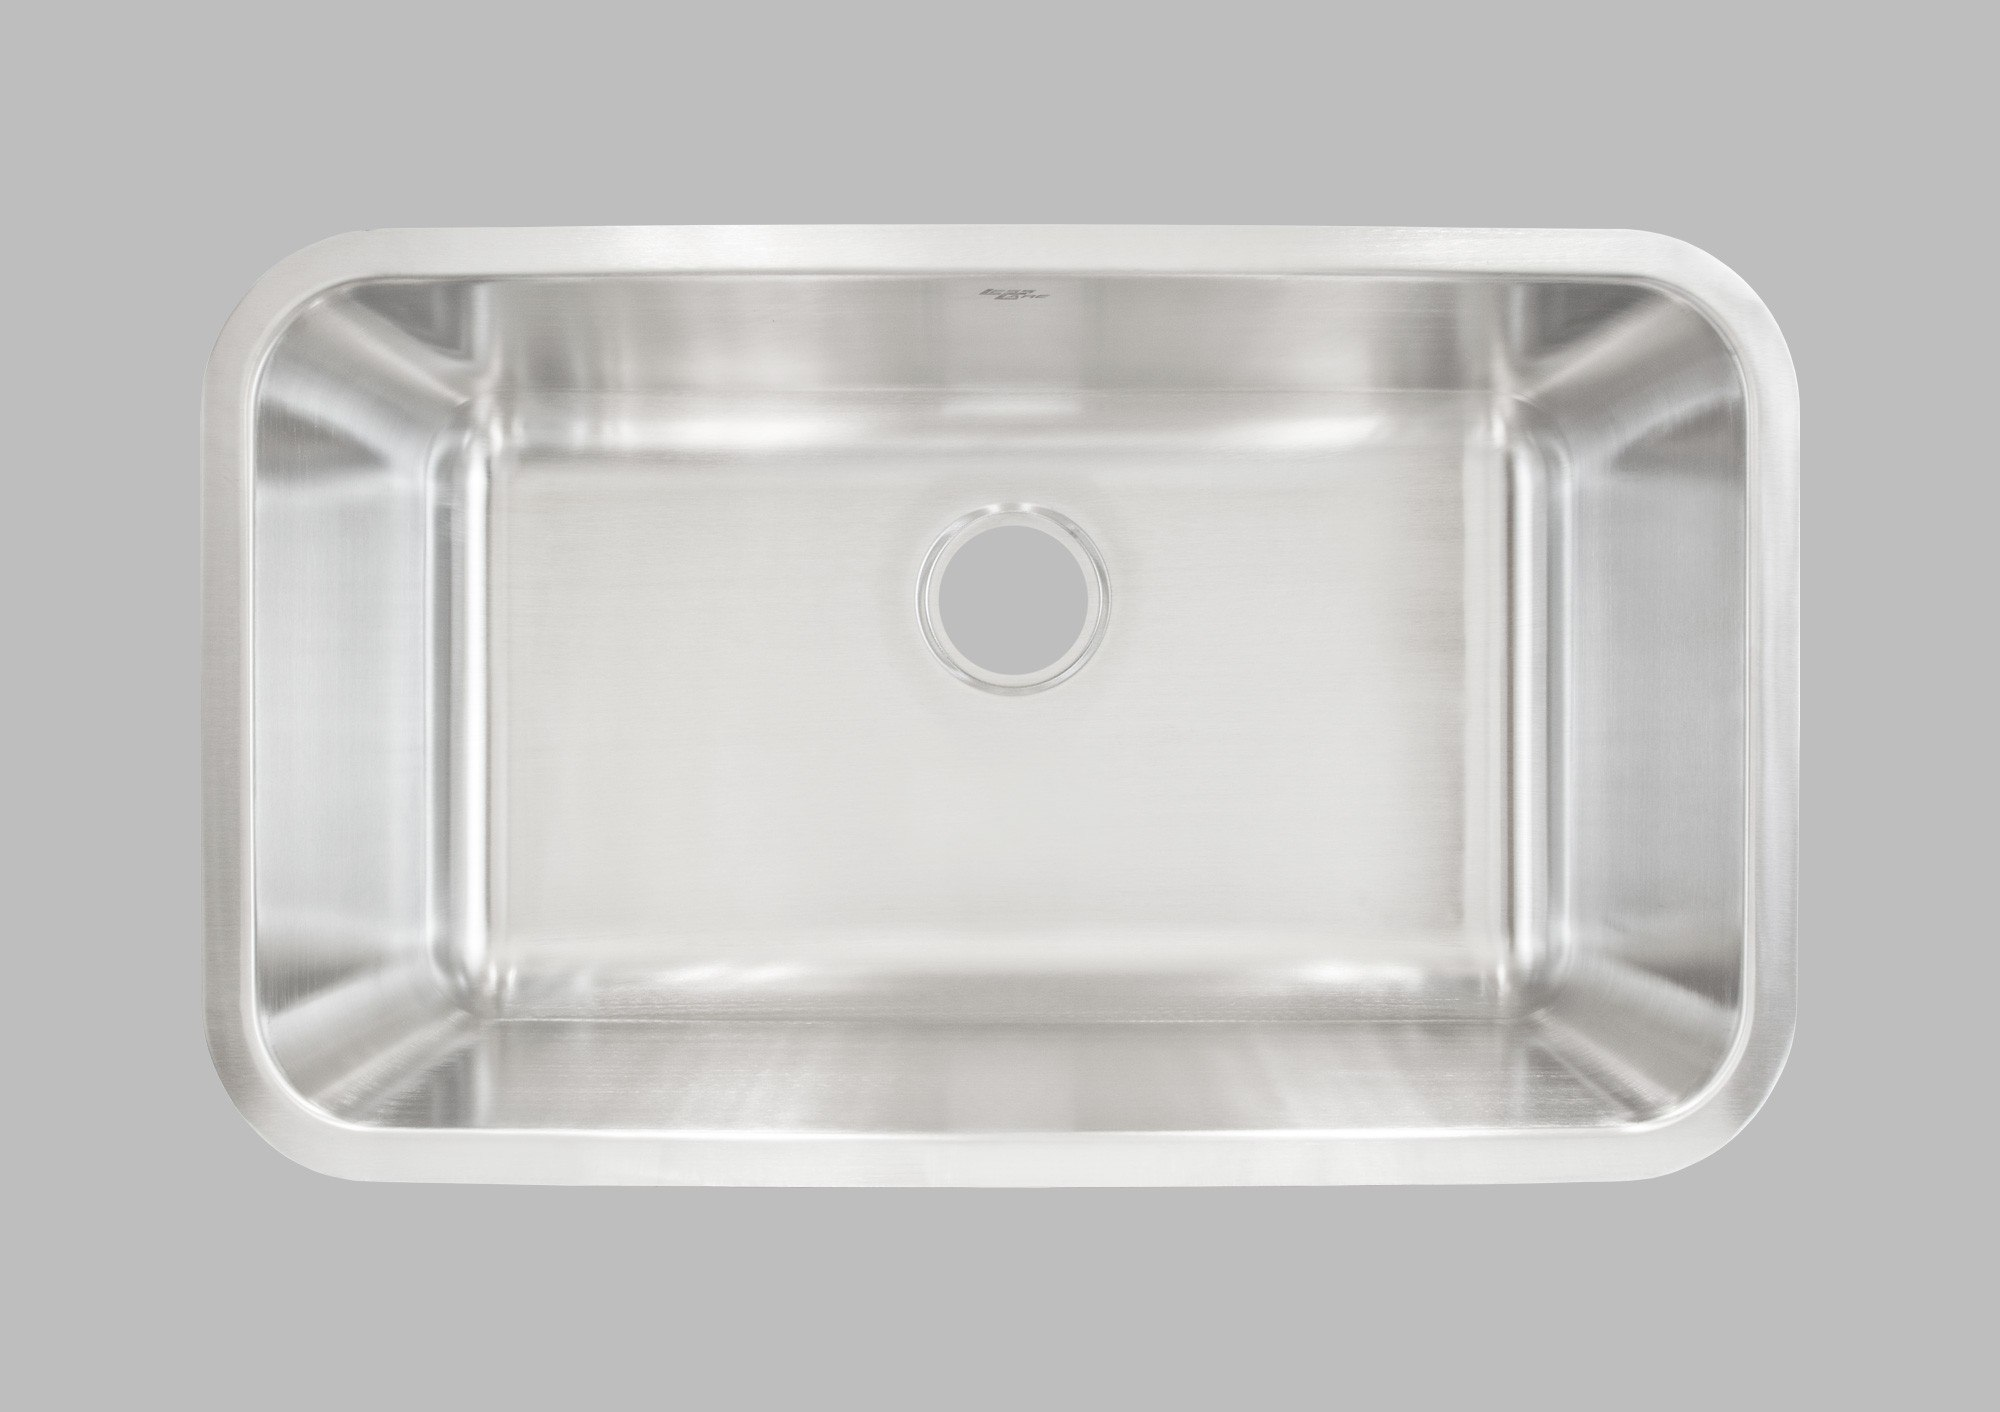 LESS CARE L107 30 INCH UNDERMOUNT SINGLE BOWL KITCHEN SINK